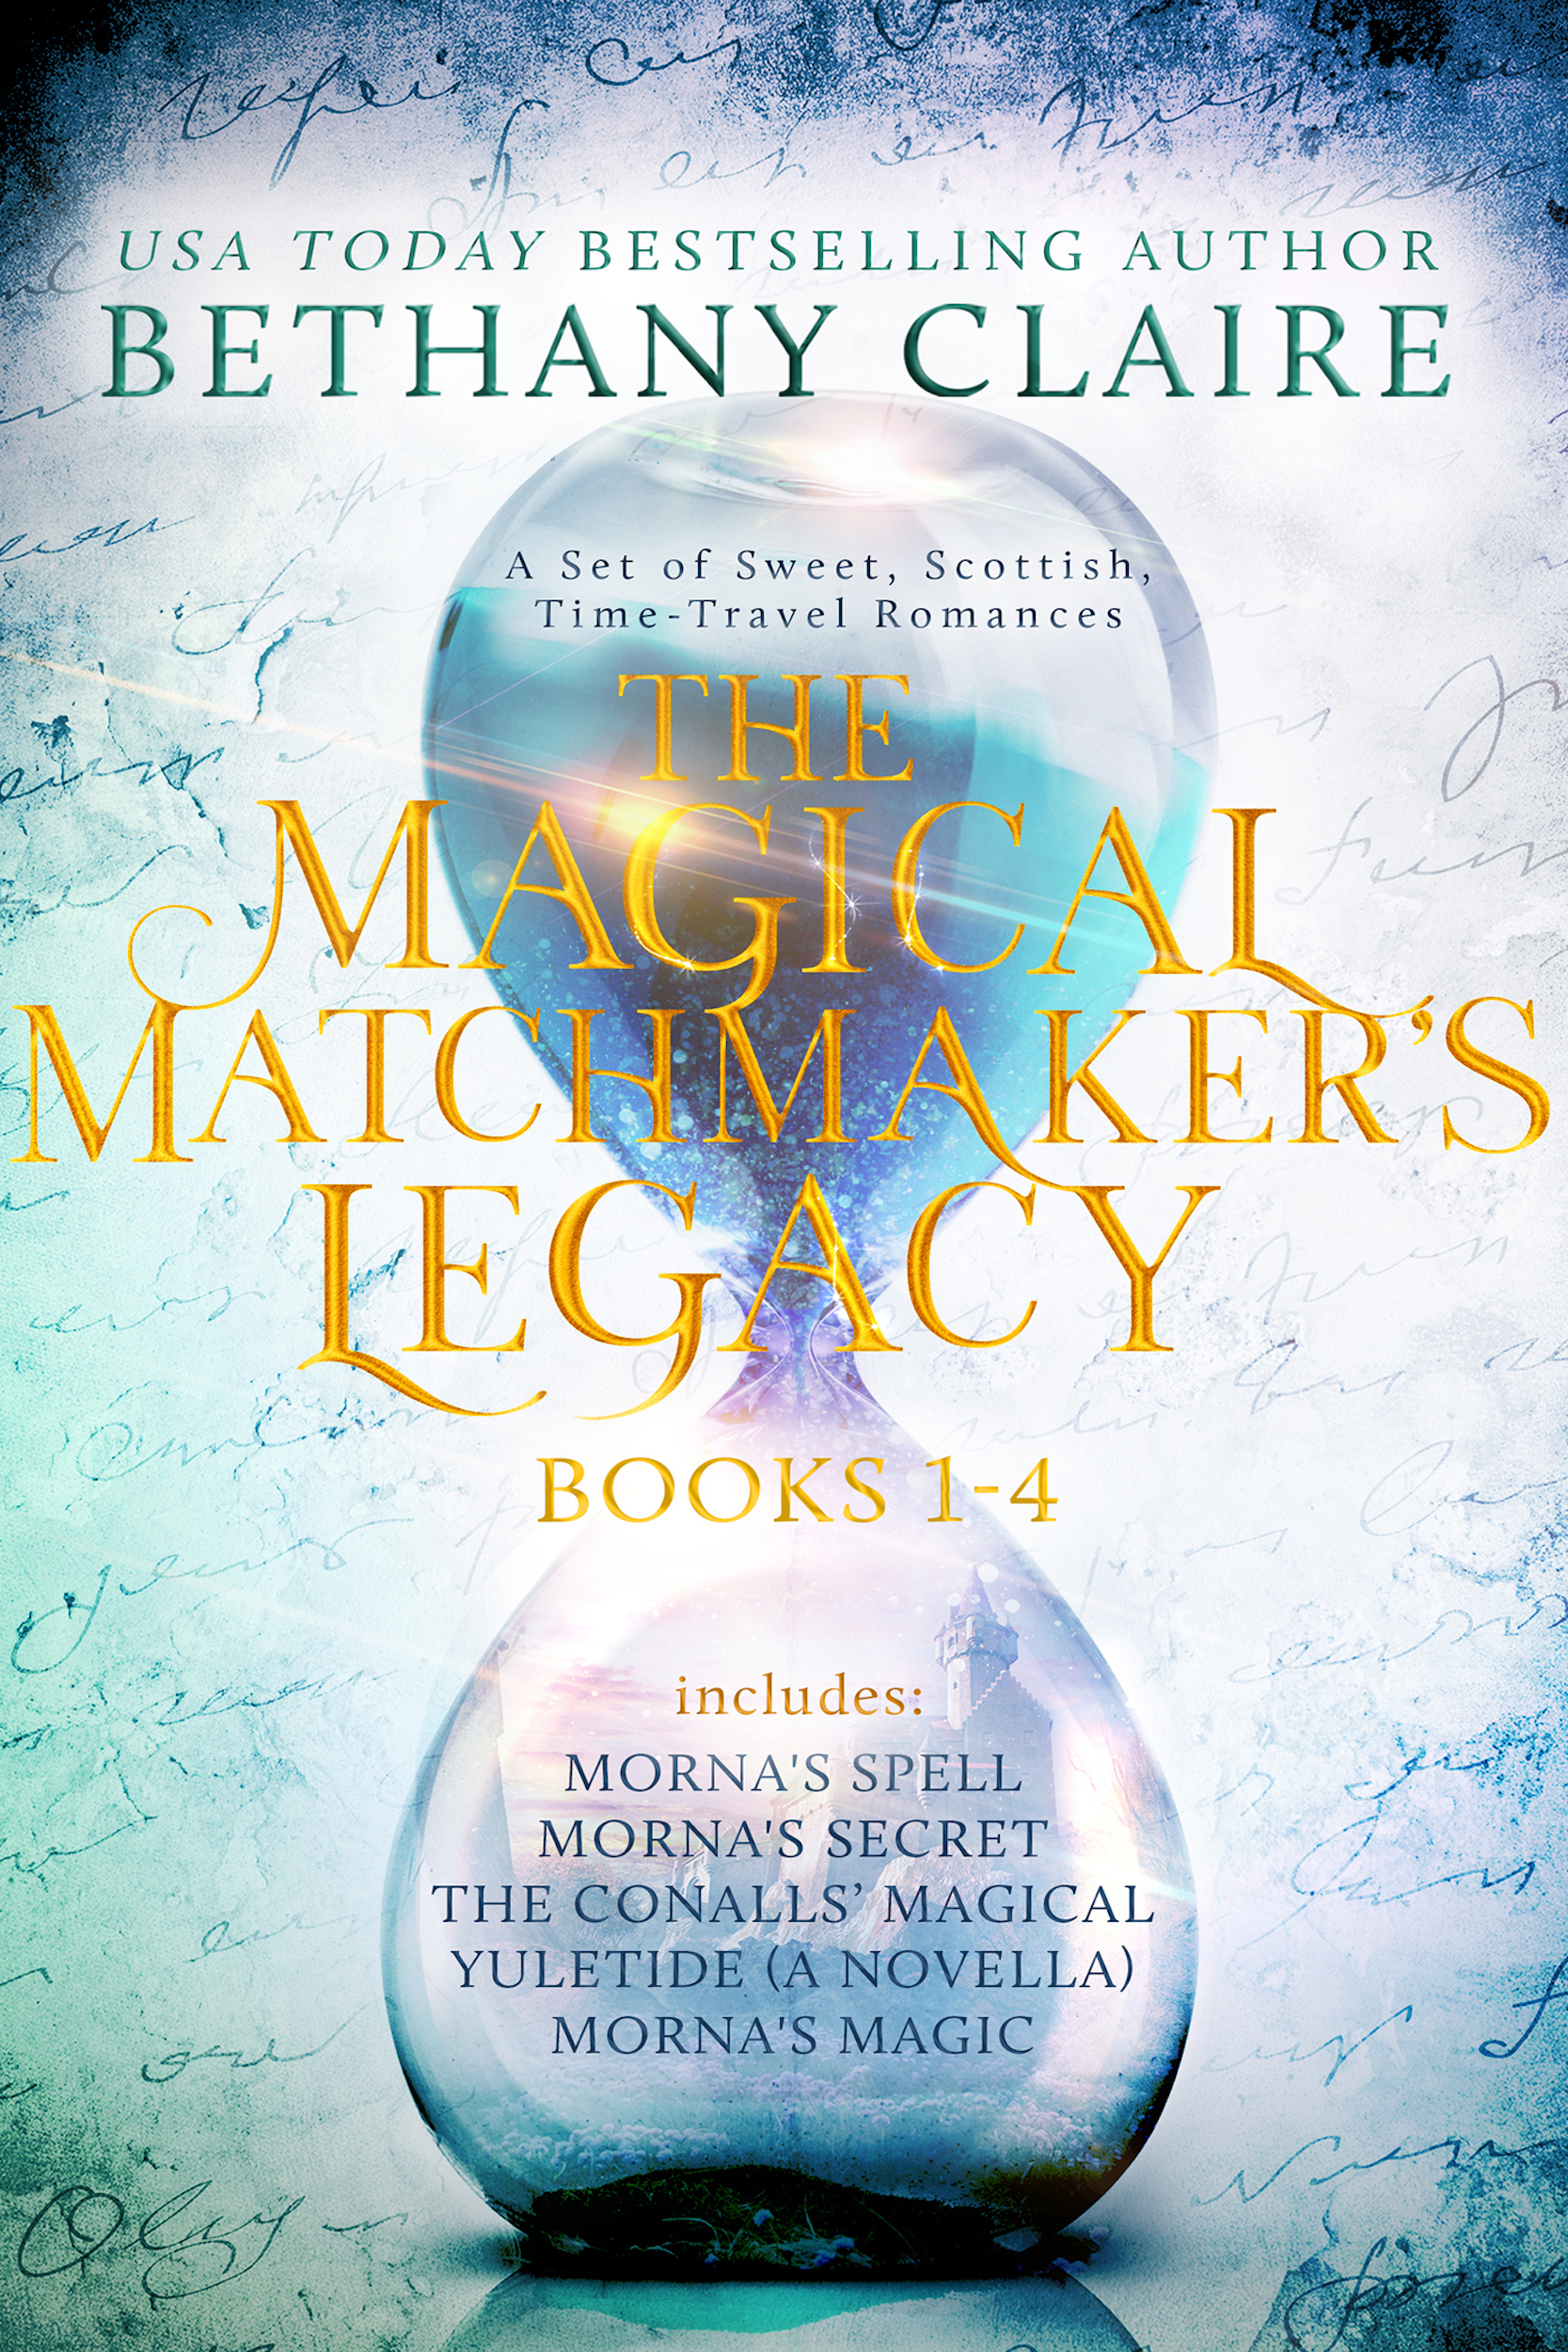 The Magical Matchmaker's Books 1-4